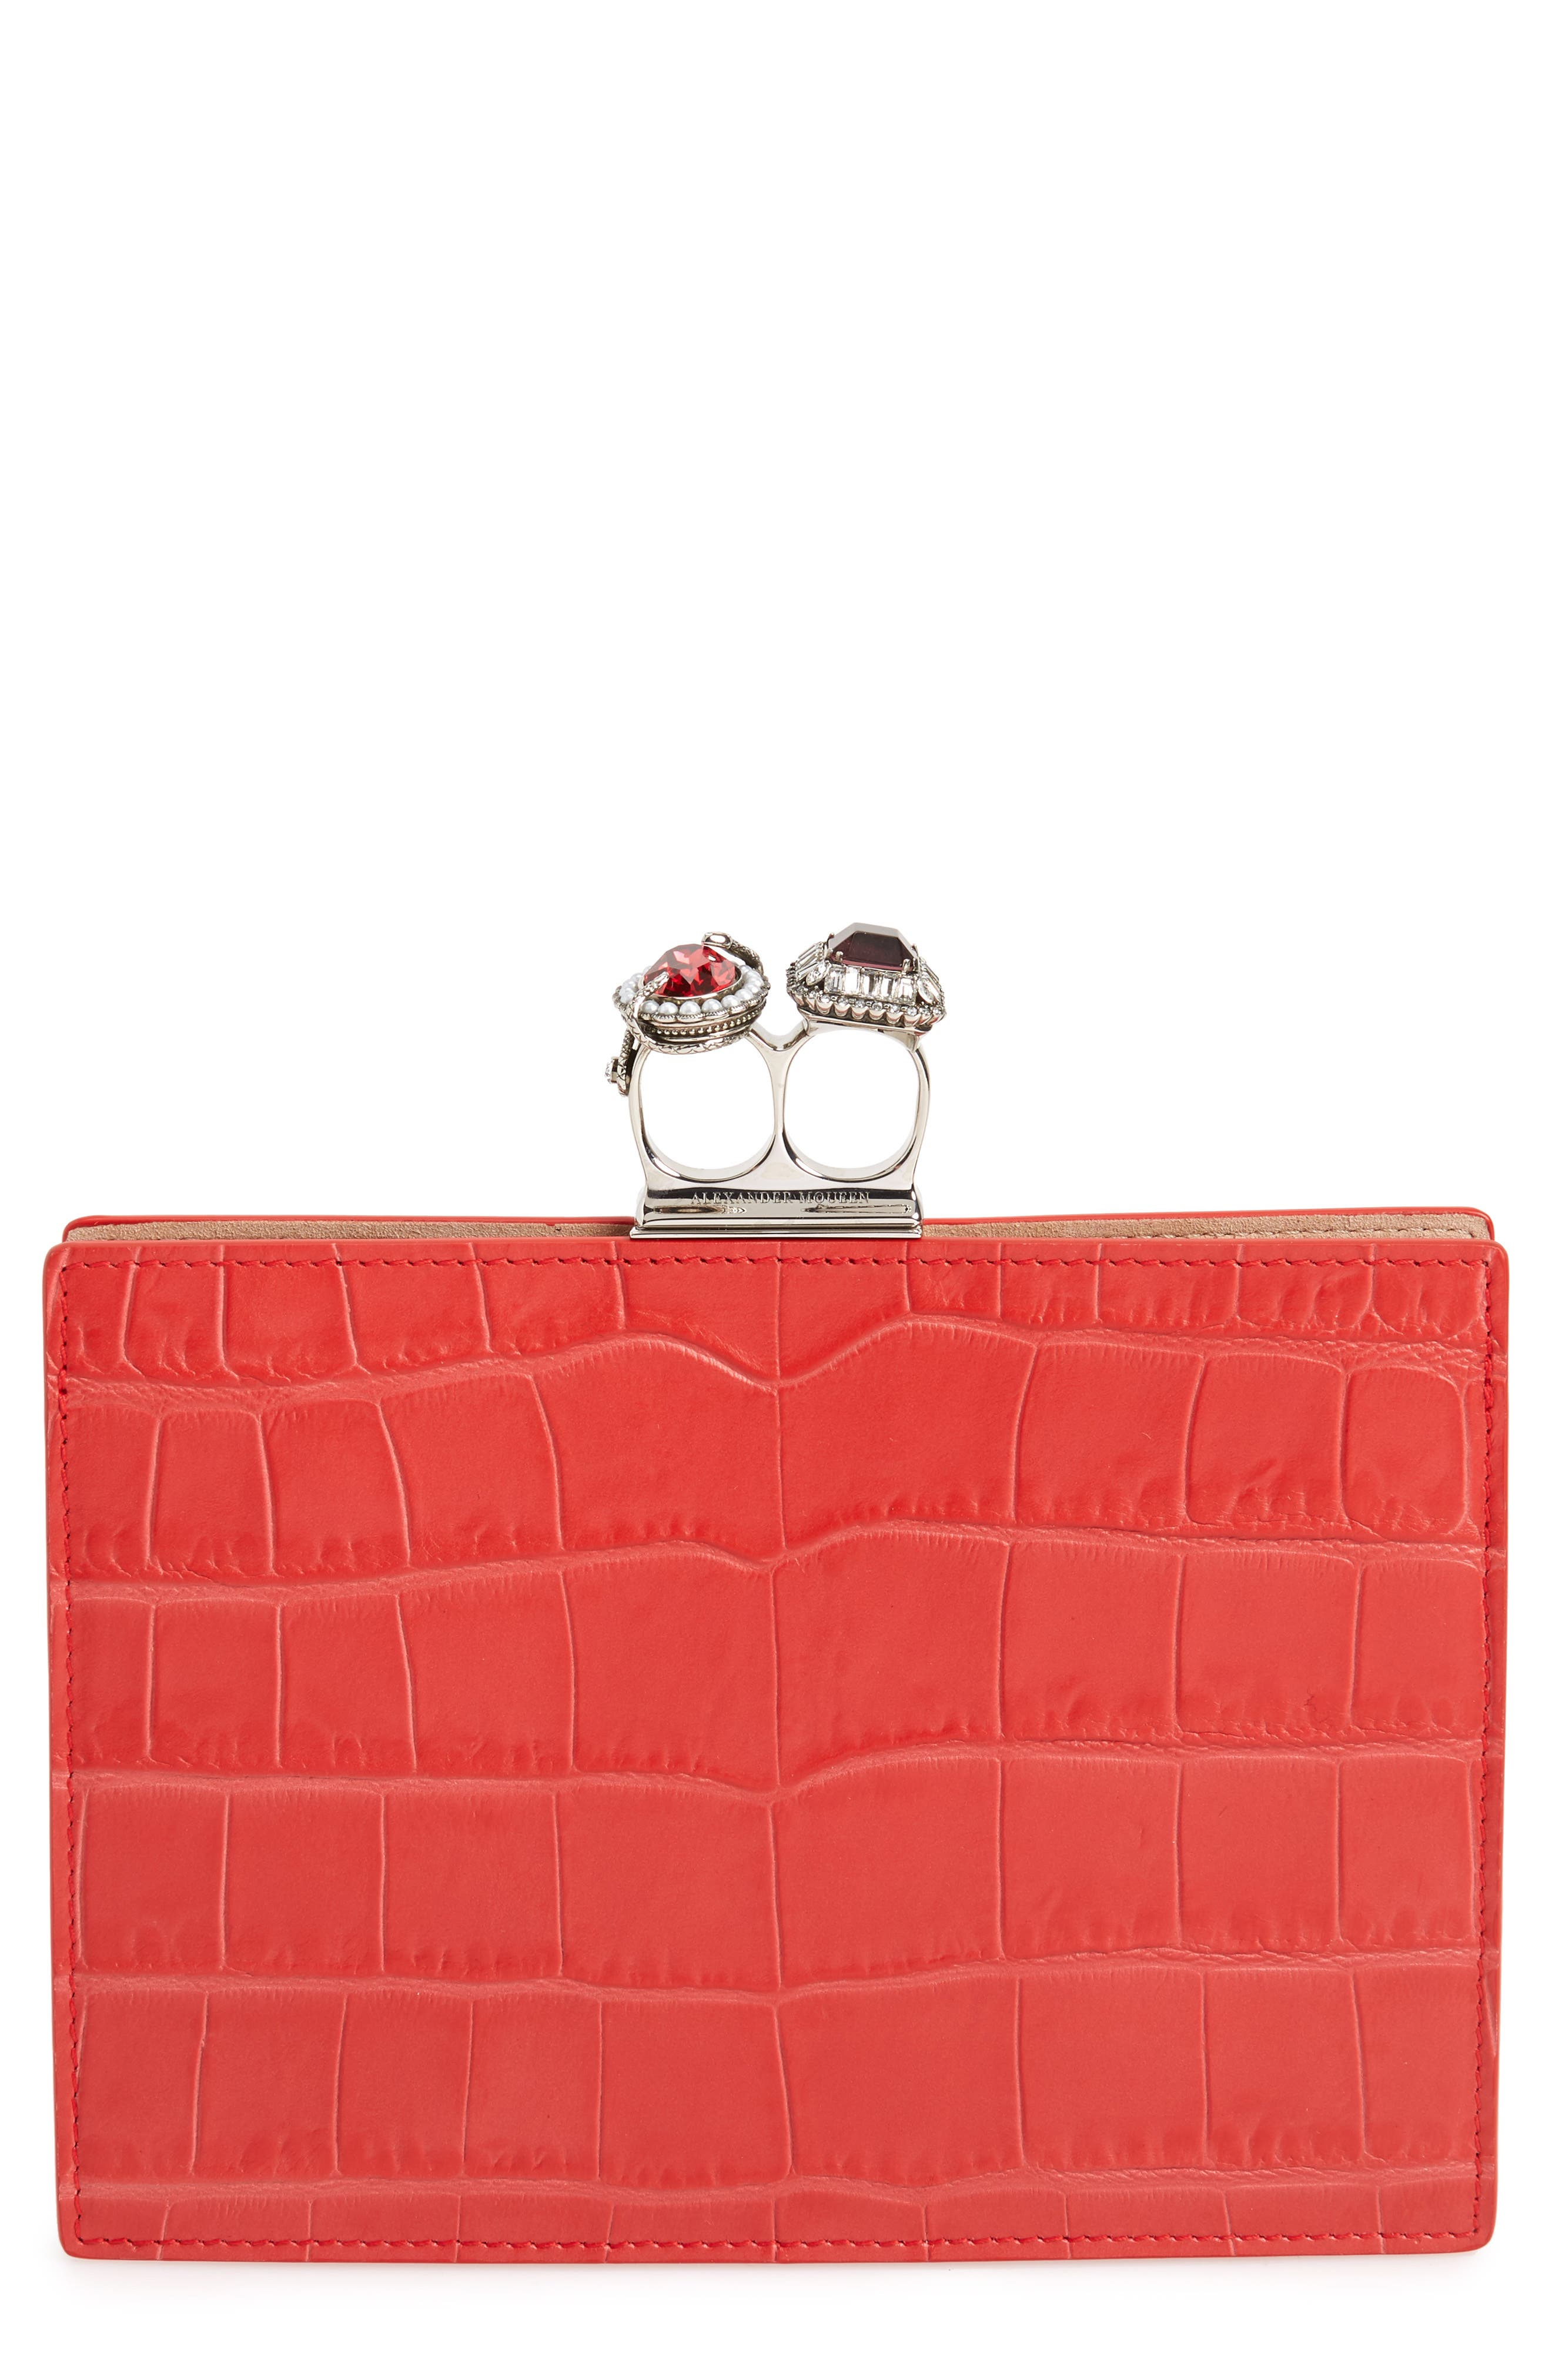 Croc Embossed Calfskin Leather Double Ring Clutch, Main, color, LUST RED